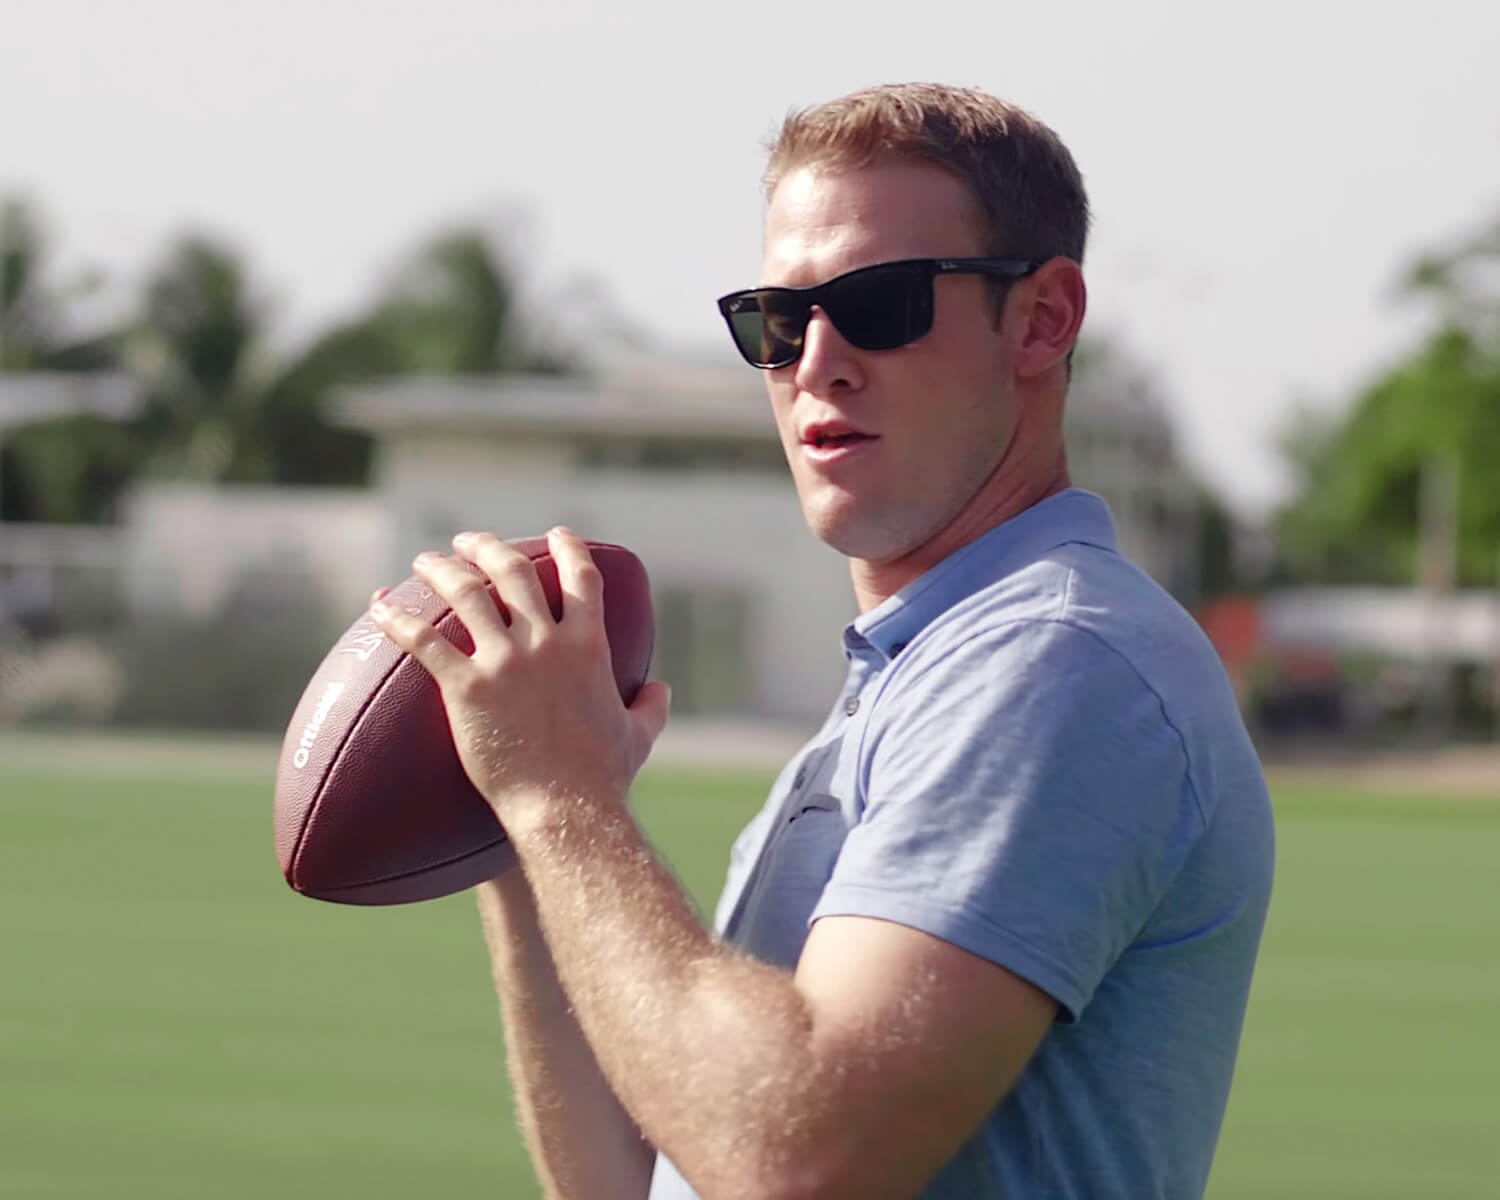 Ryan Tannehill, Stem Cell Therapy Patient.